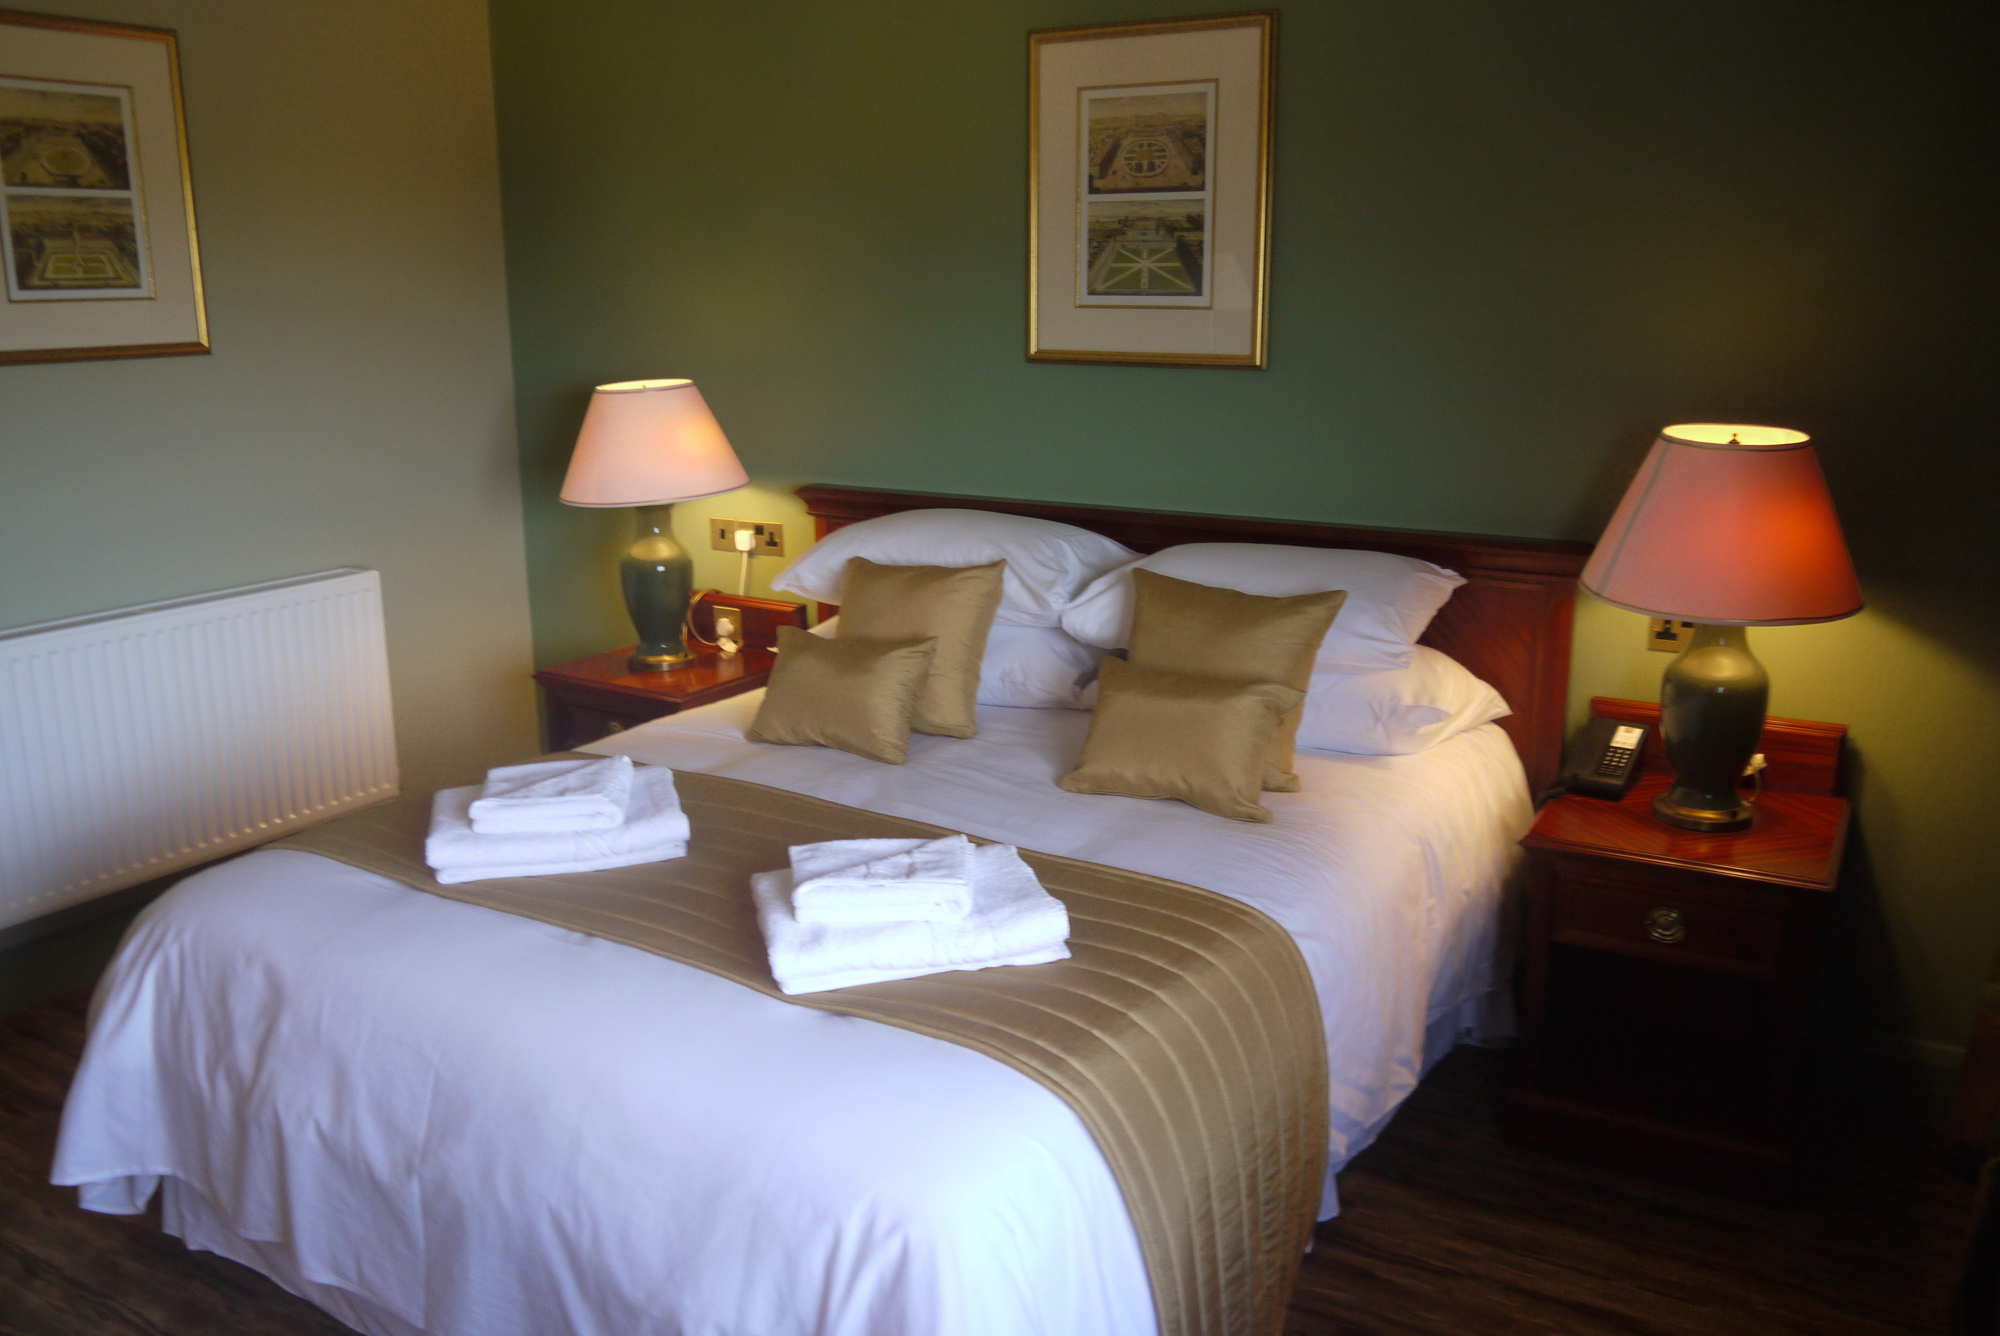 Hotels near Salisbury - The Stones Hotel